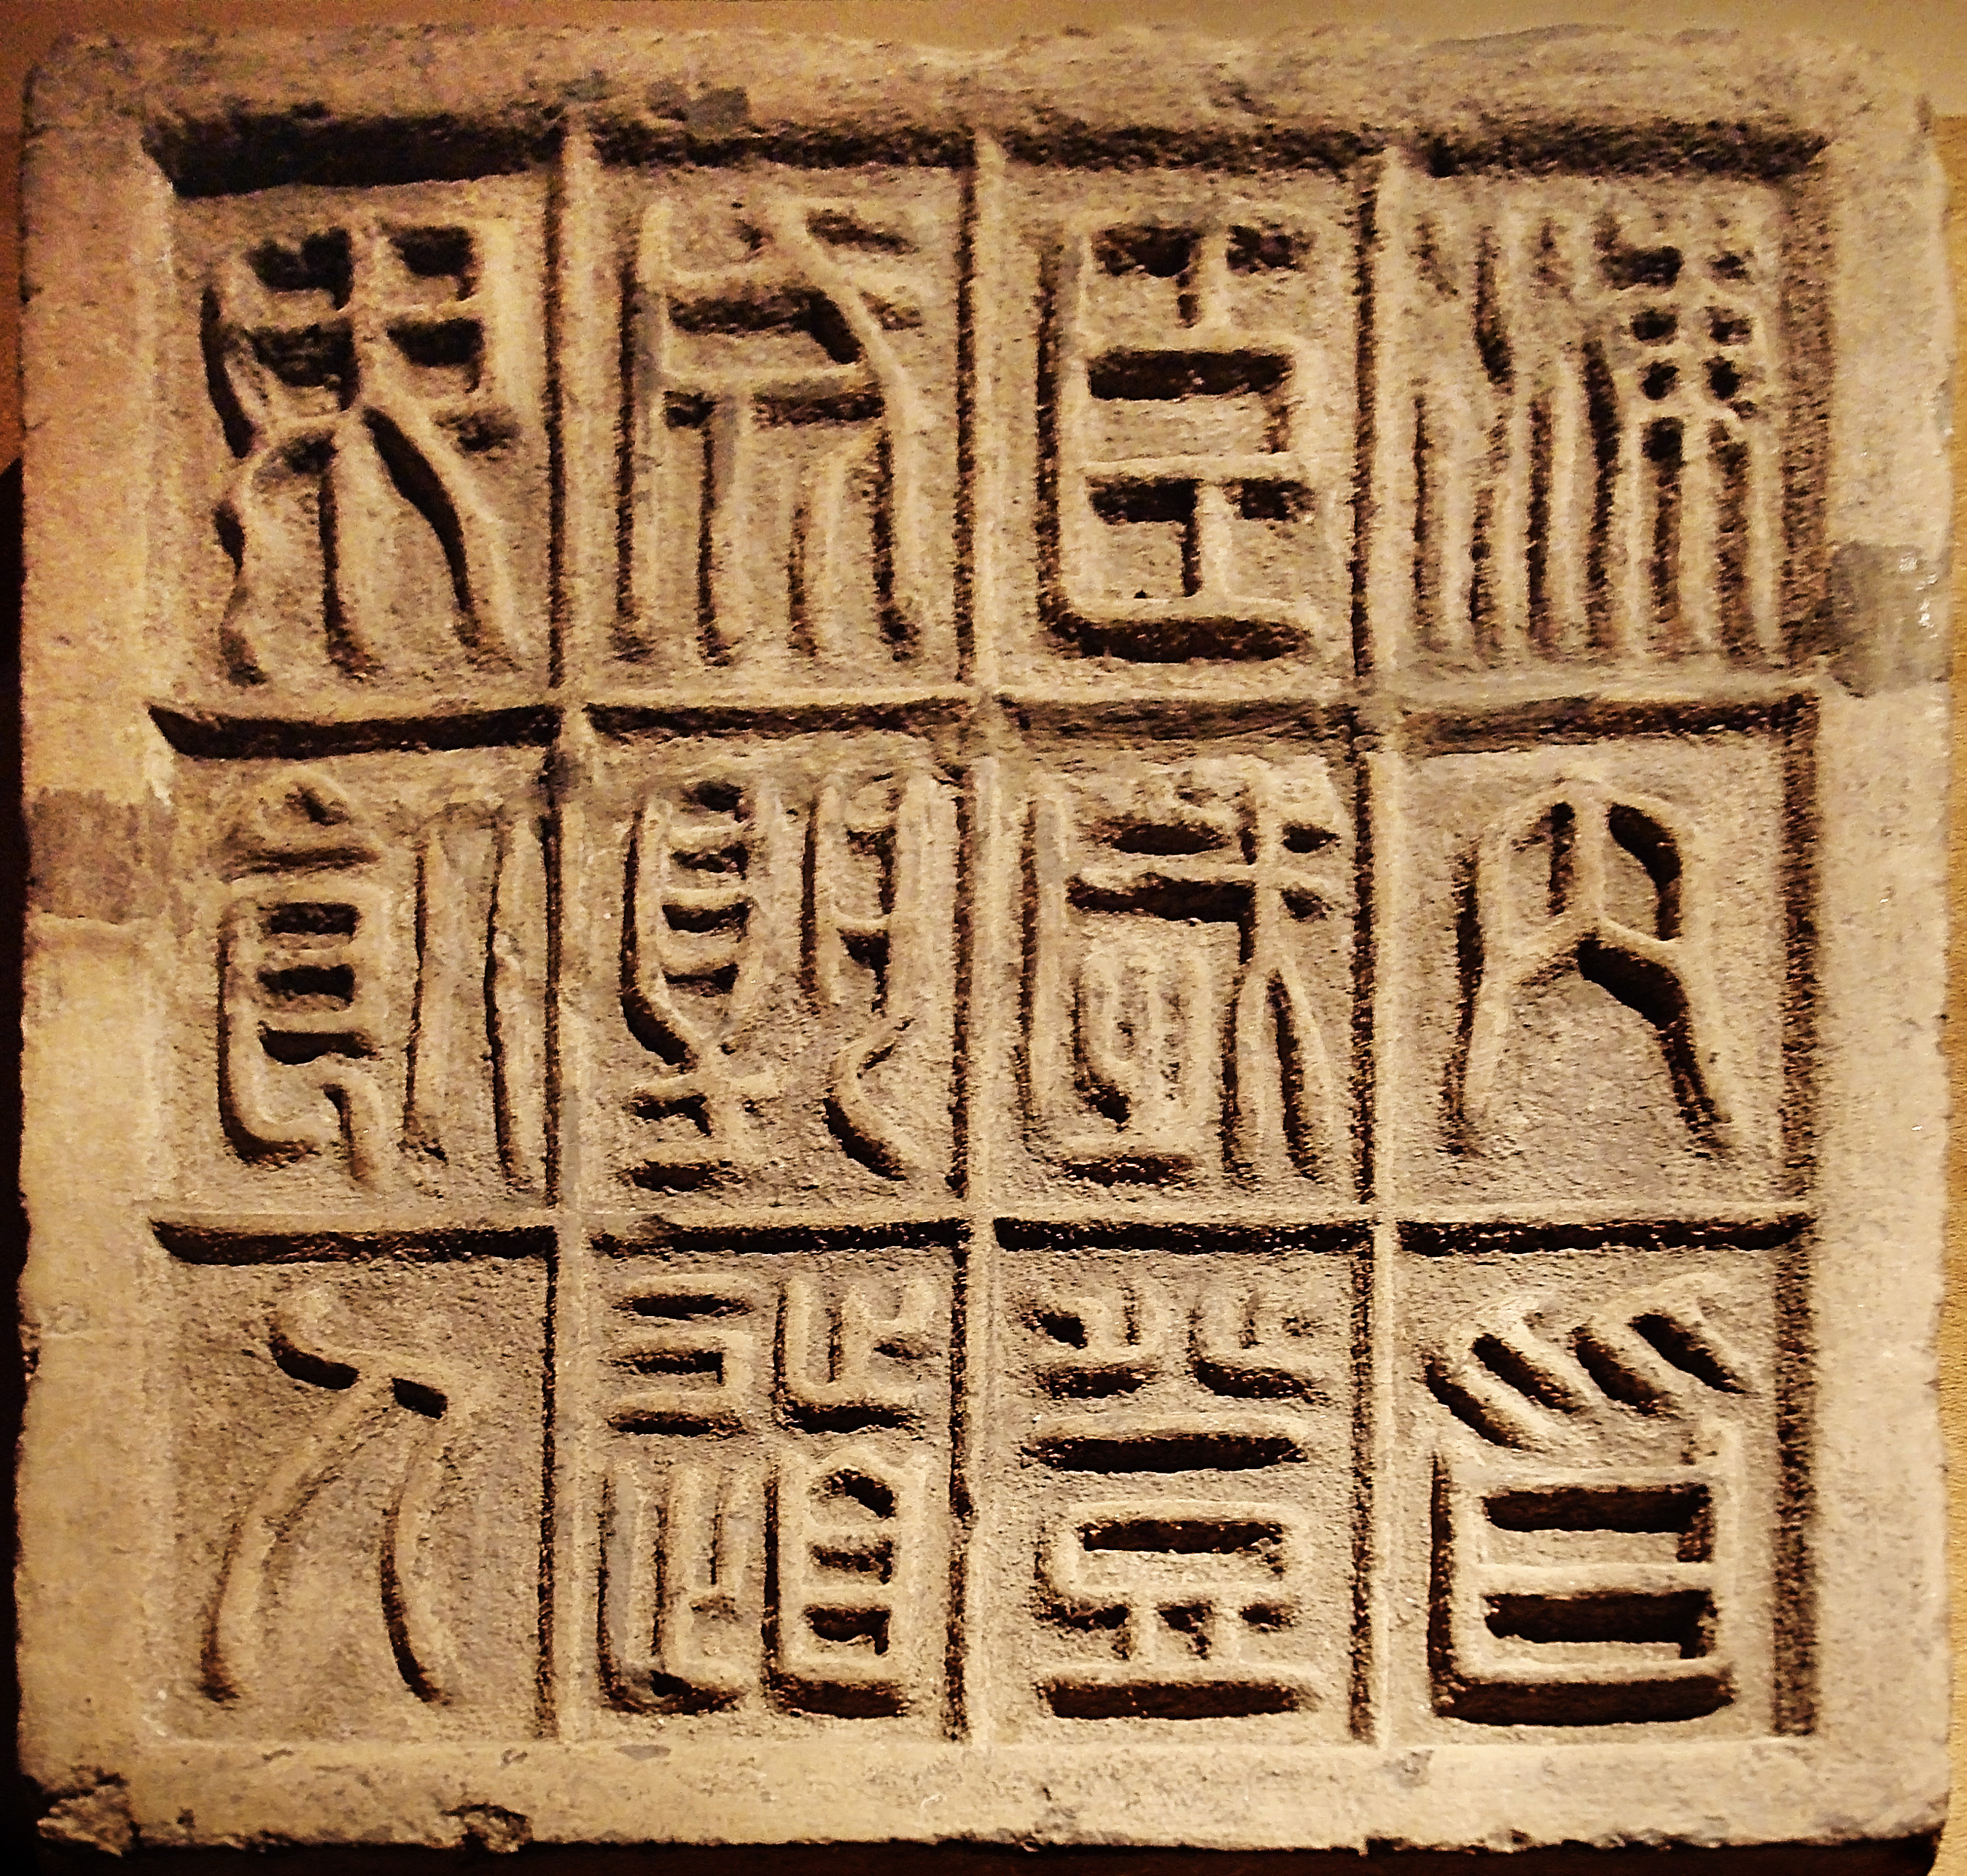 File:CMOC Treasures of Ancient China exhibit - stone slab with ...